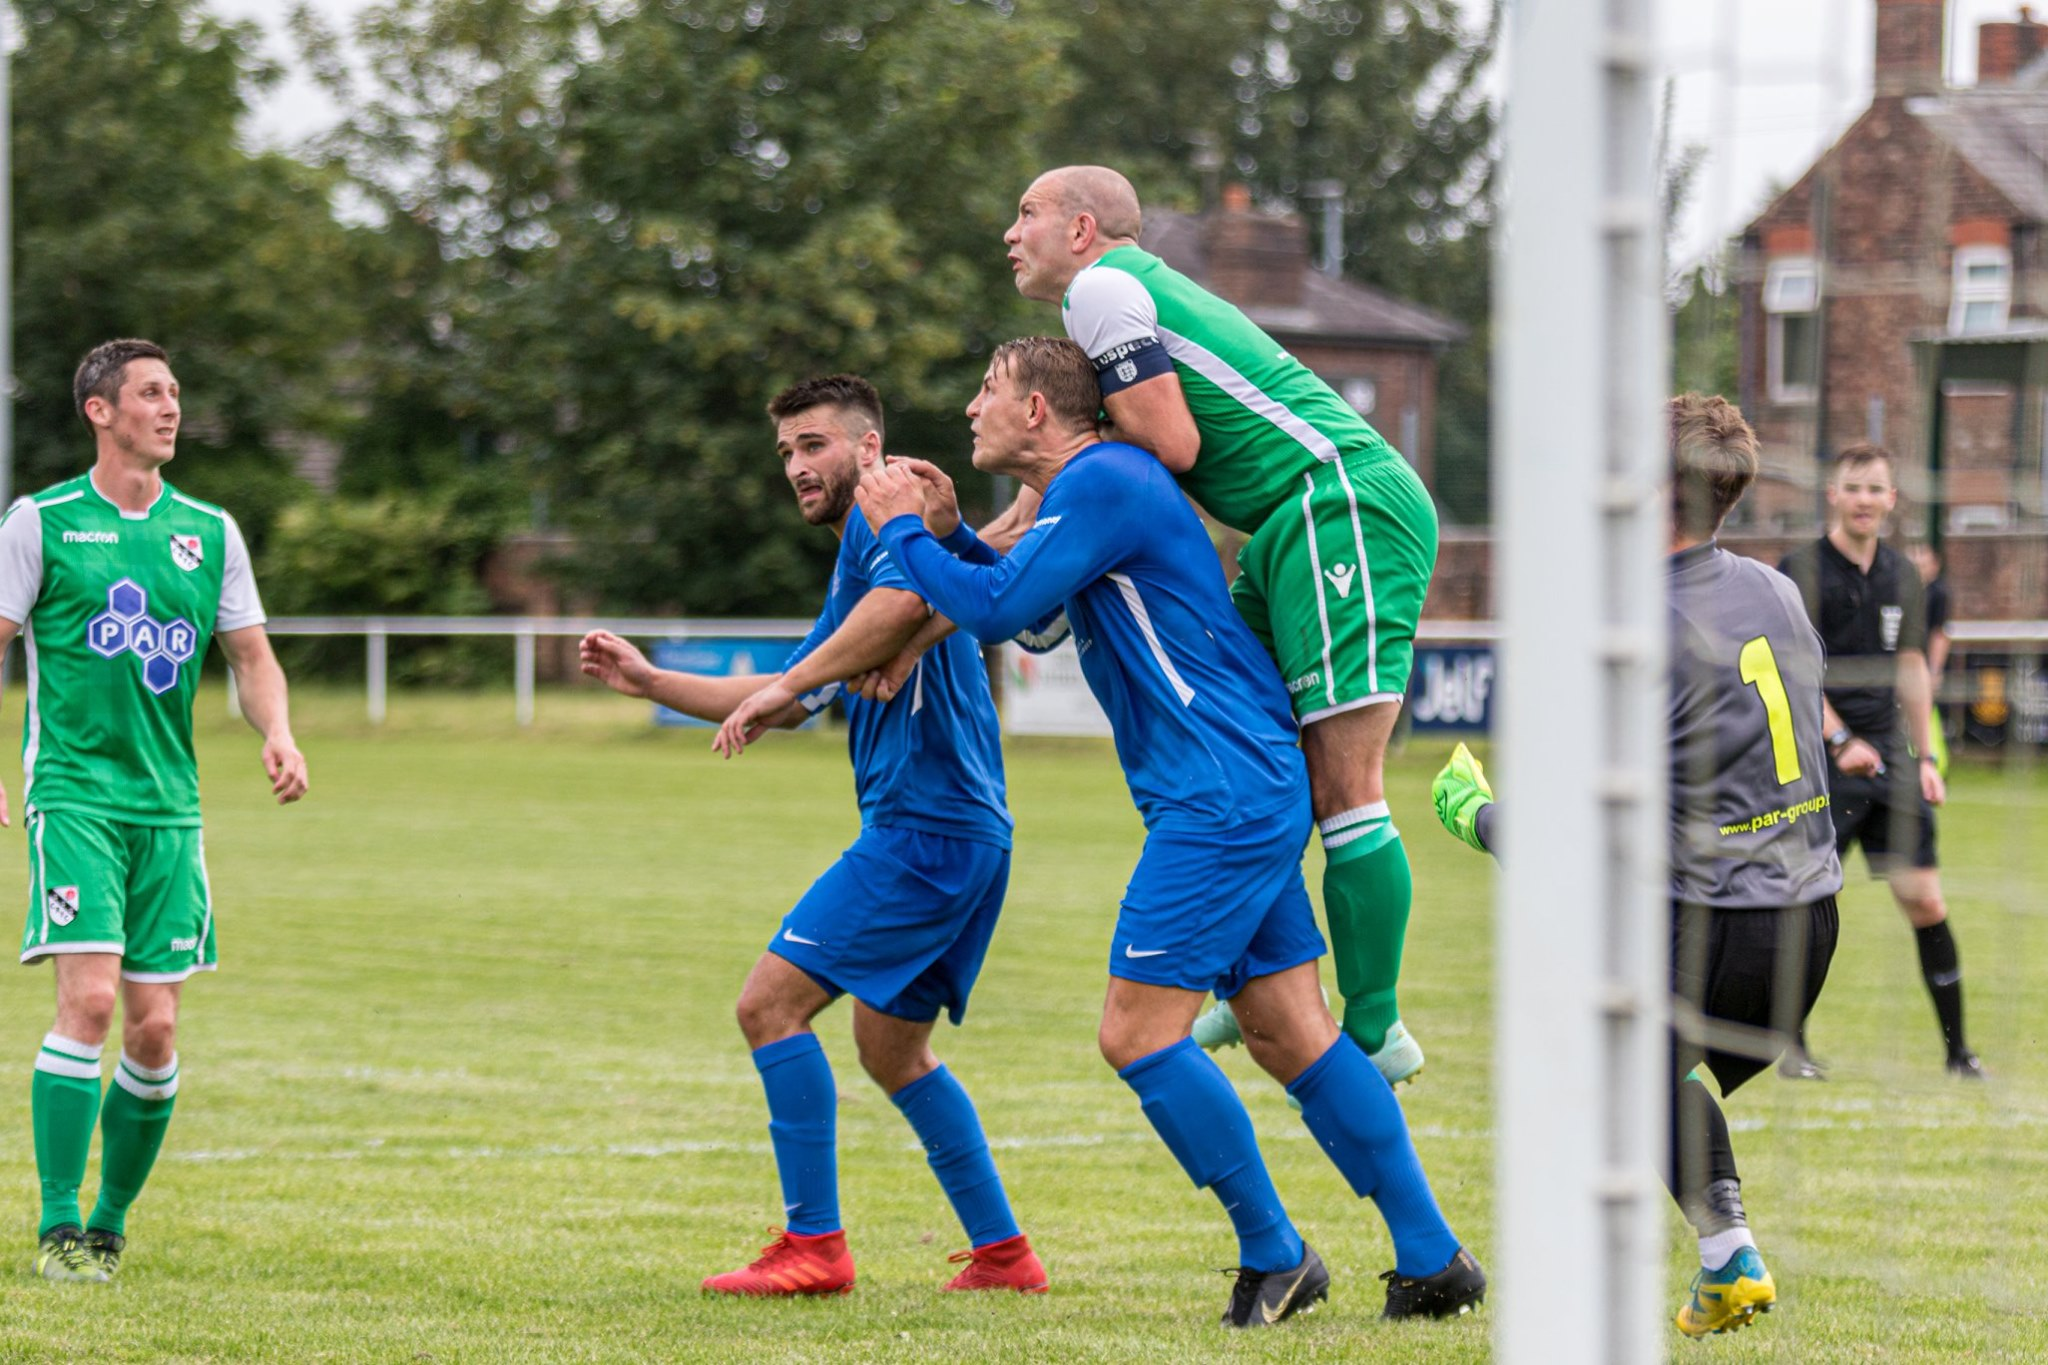 Barnton Wanderers and Middlewich Town reserves progress in Mid-Cheshire  District FA Challenge Cup | Northwich Guardian